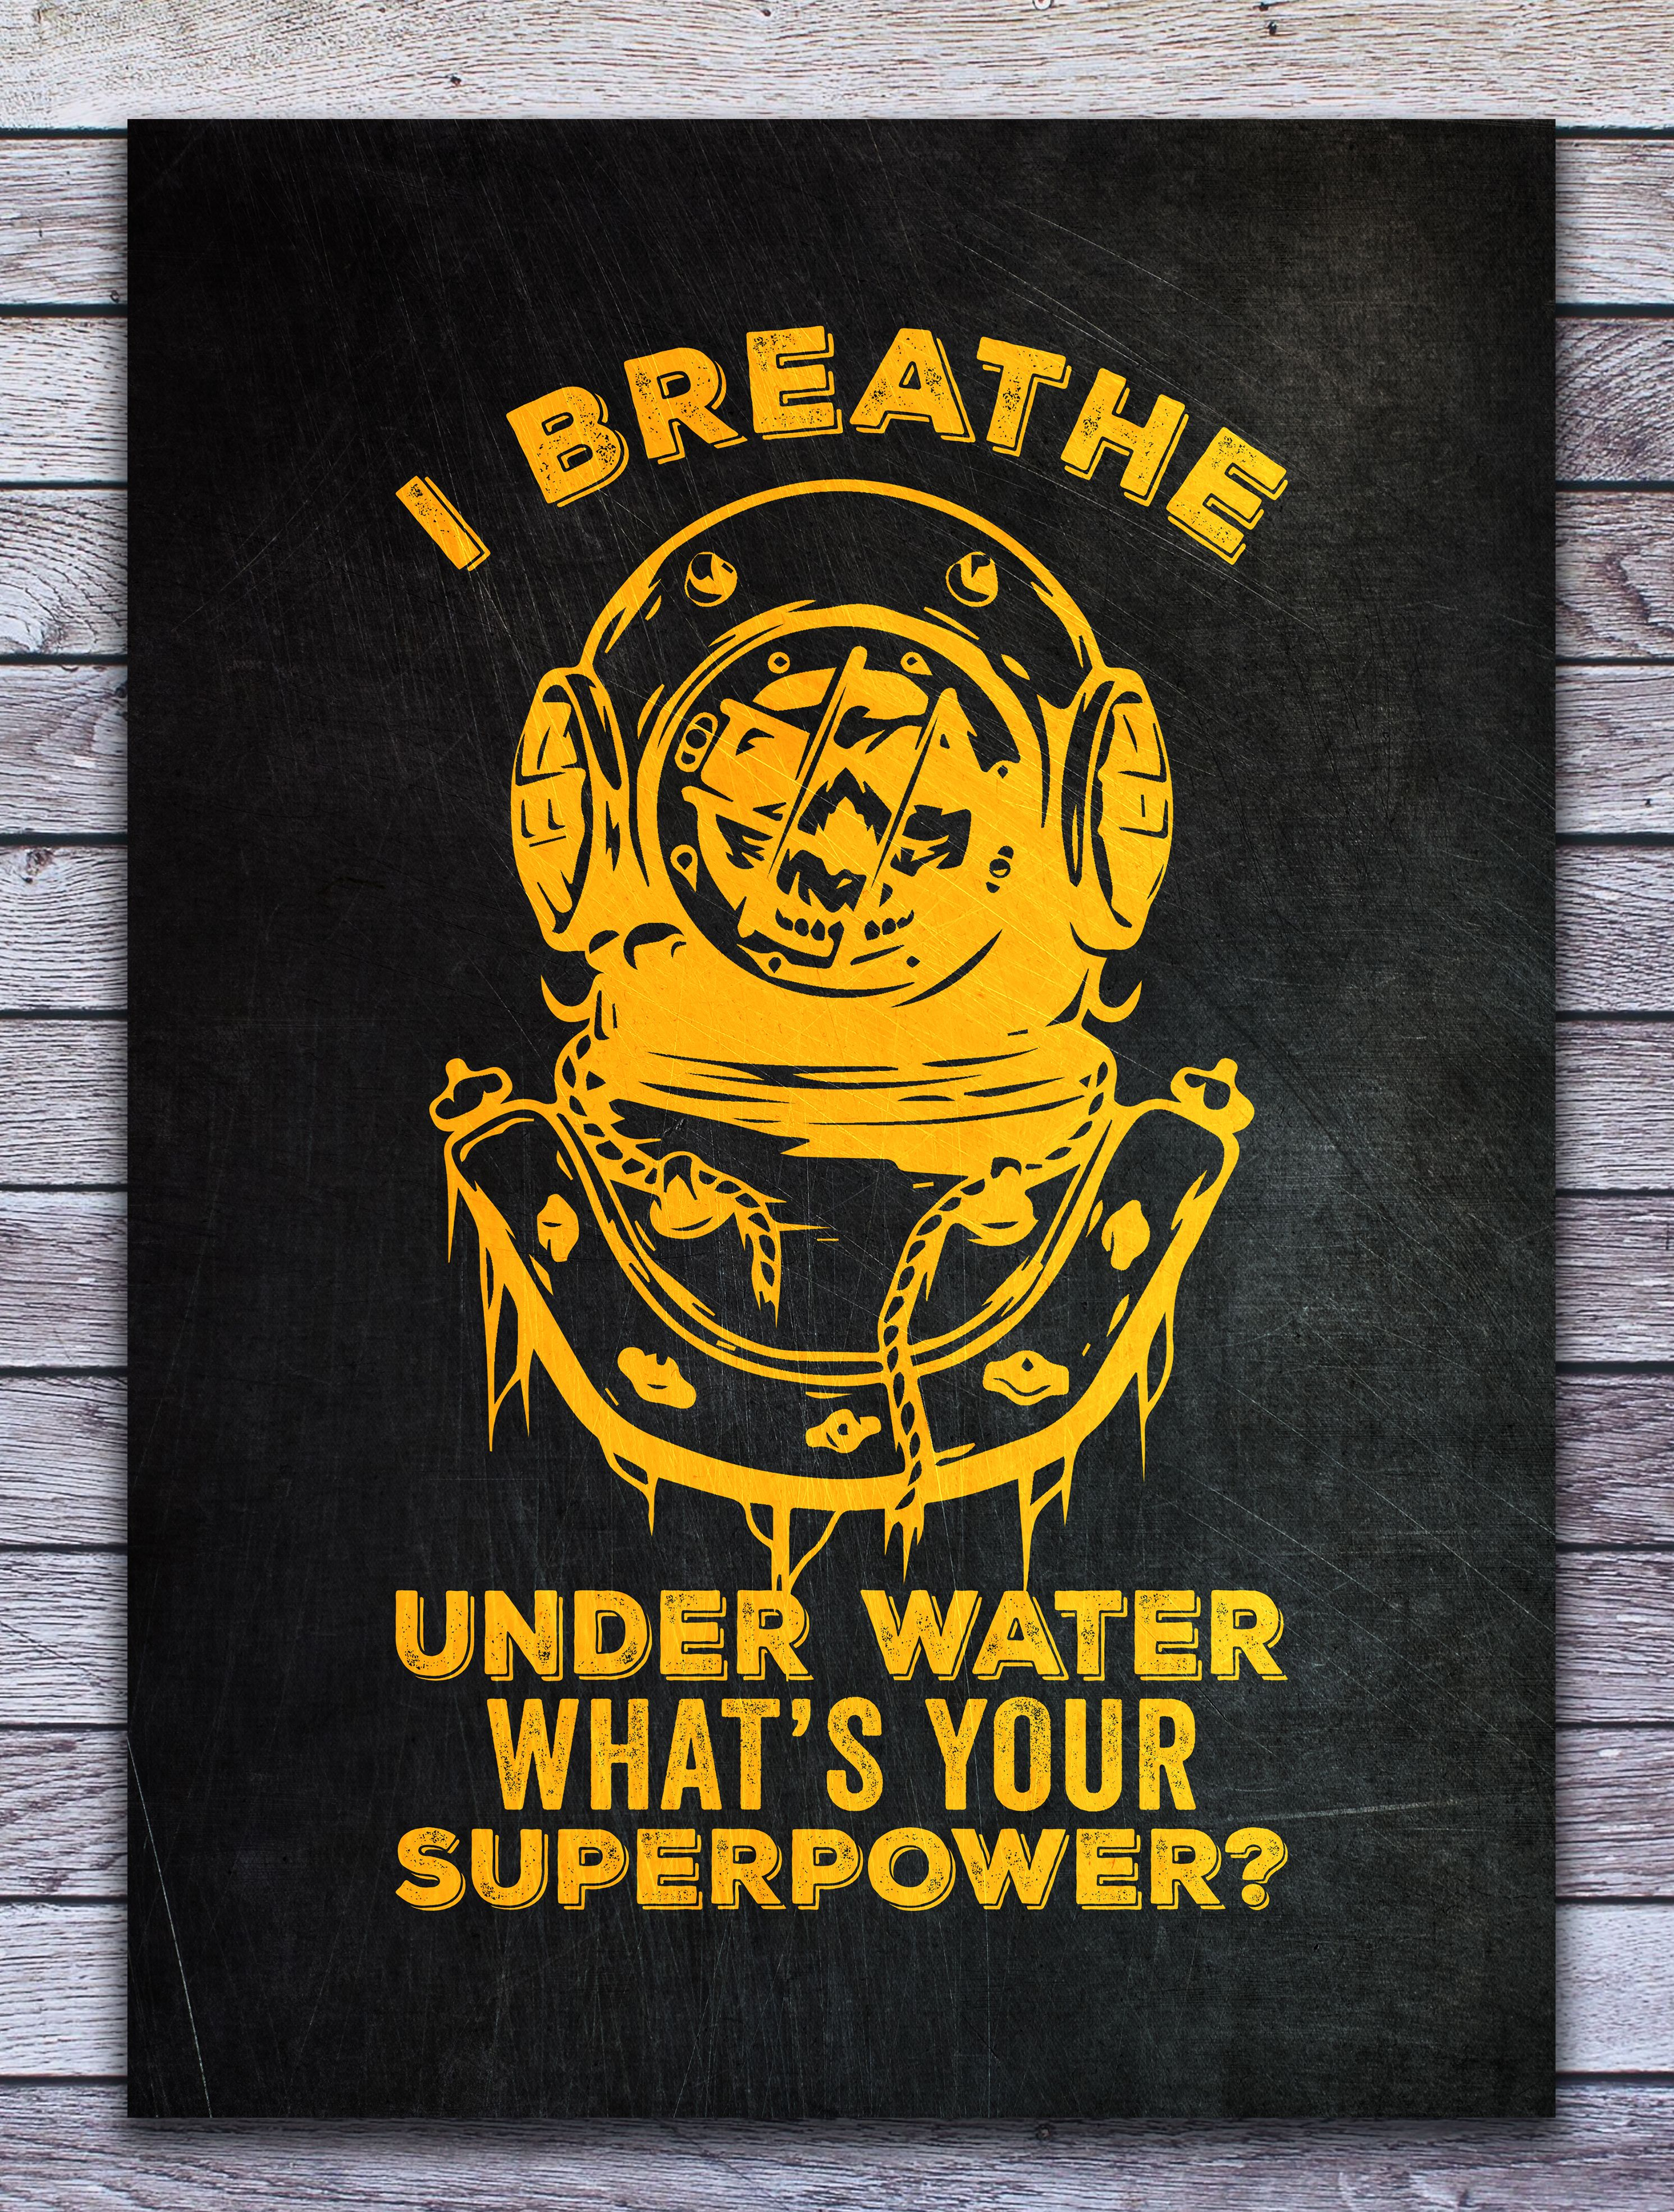 I Breathe Under Water Metal Poster Print Posterworld Displate In 2020 Poster Prints Water Poster Metal Posters